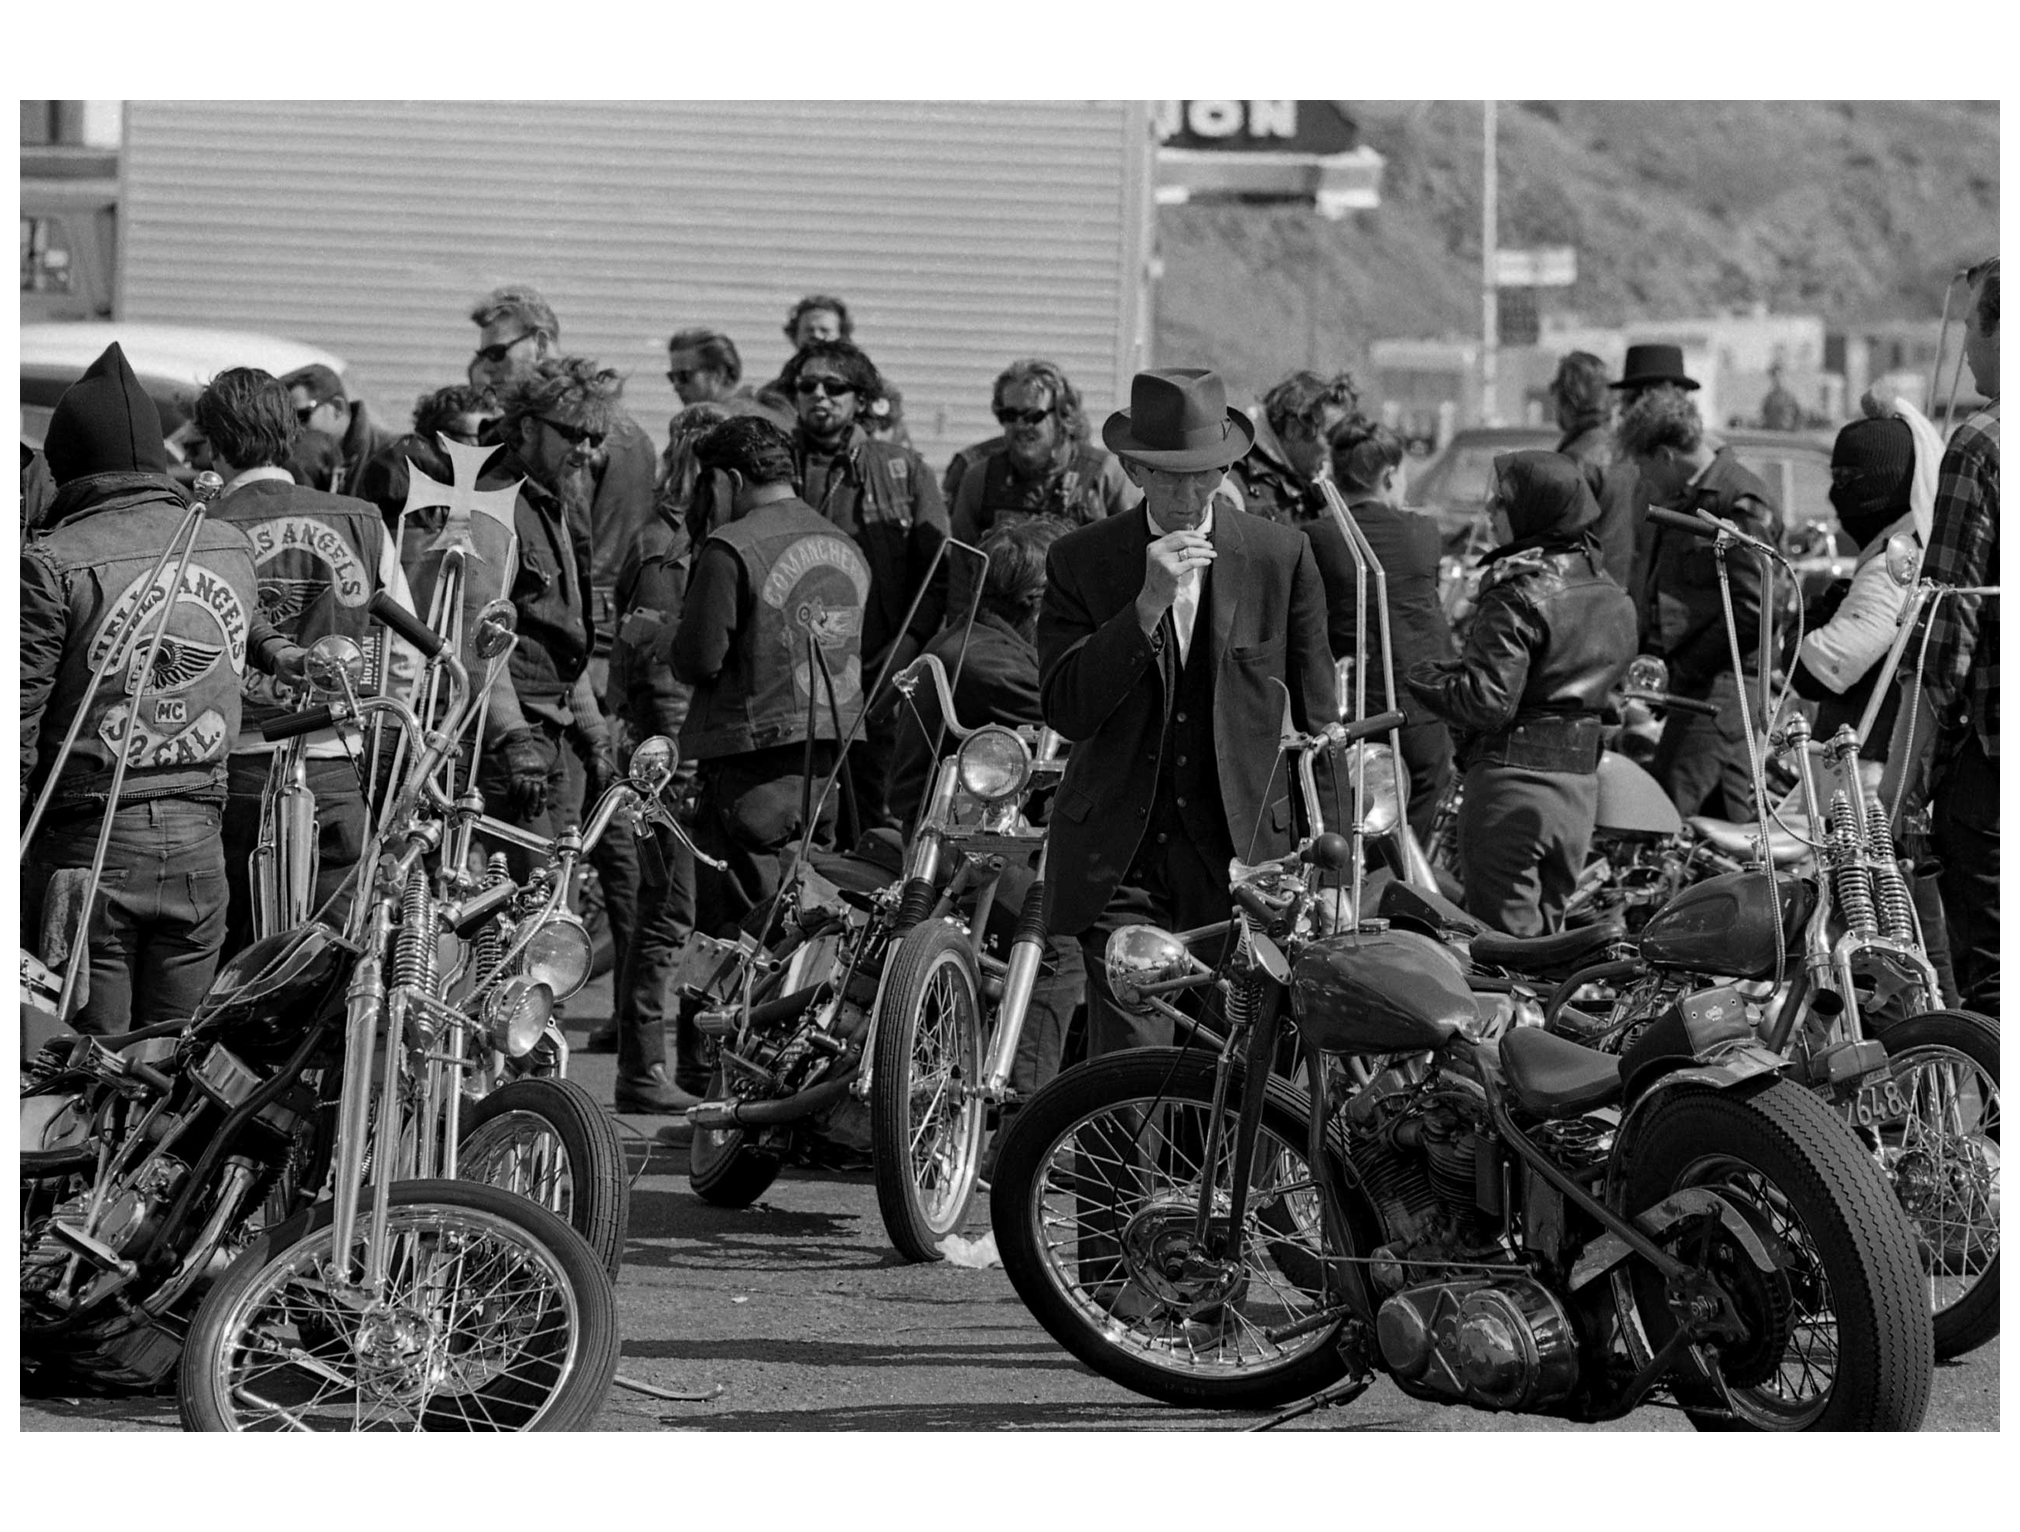 a-man-in-bakersfield-calif-casts-what-appears-to-be-an-appraising-eye-over-the-hells-angels-harley-davidsons-1965.jpg